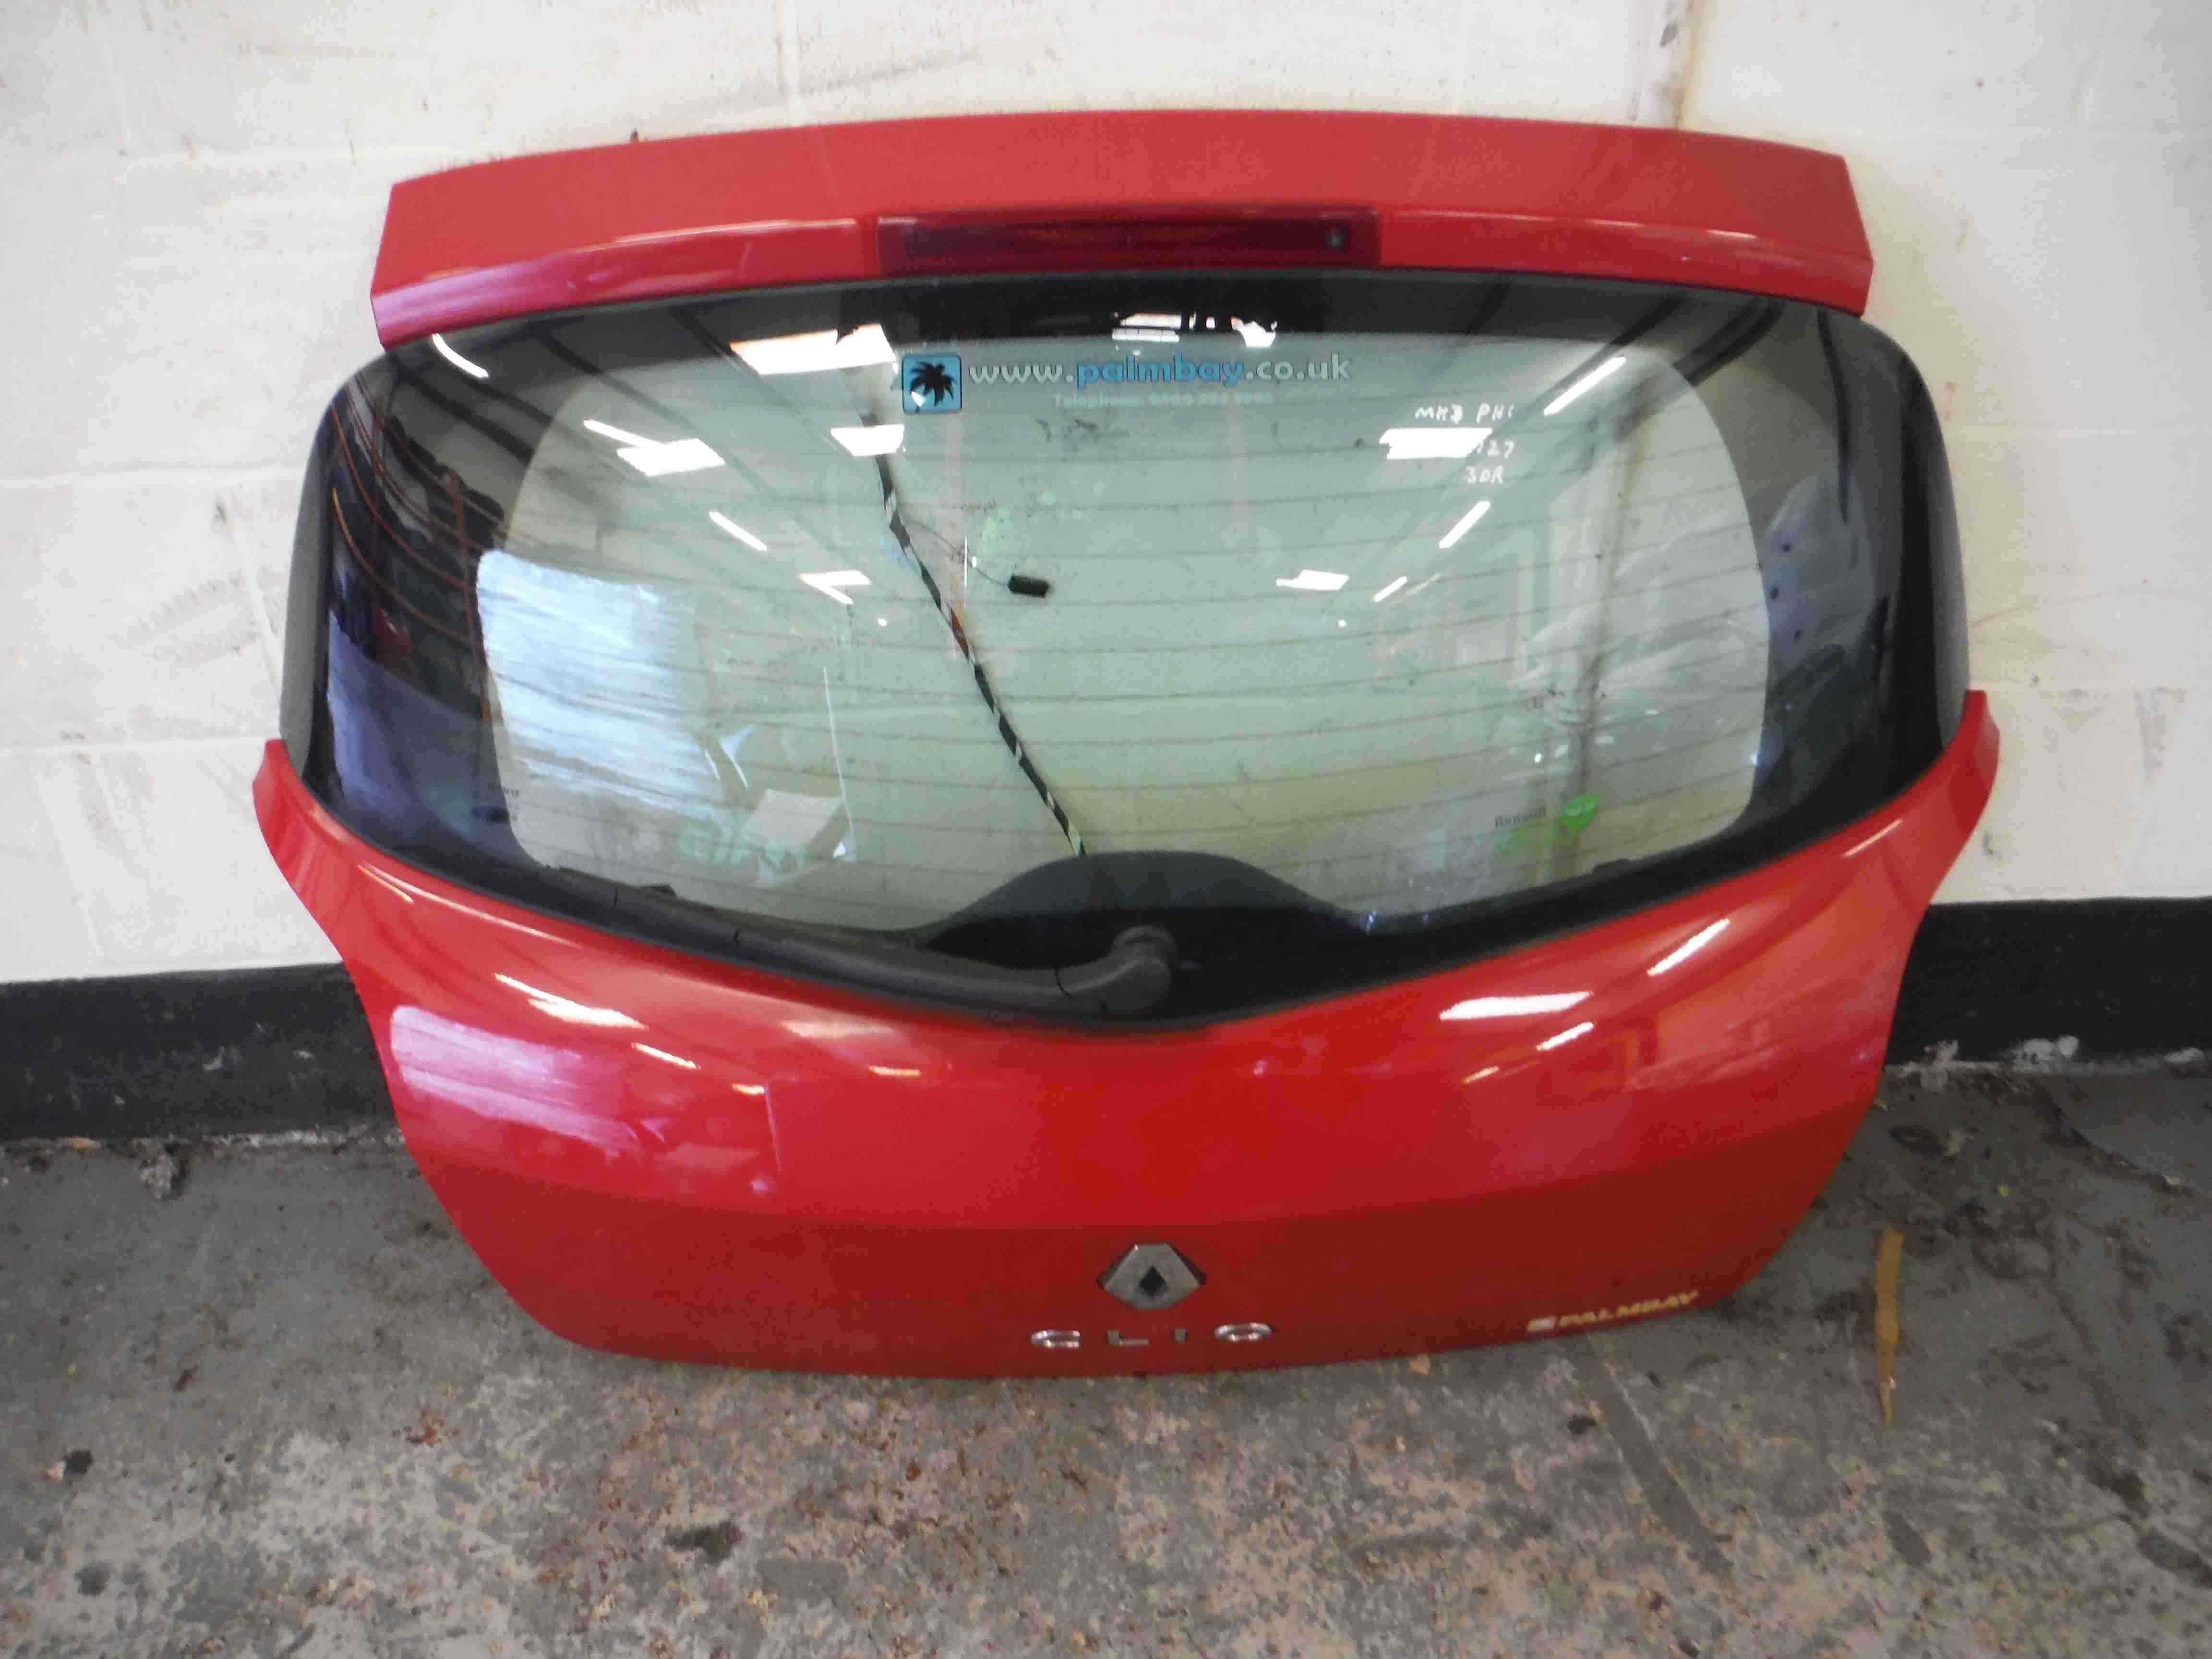 Renault Clio MK3 2005-2012 Rear Tailgate Boot Red OV727